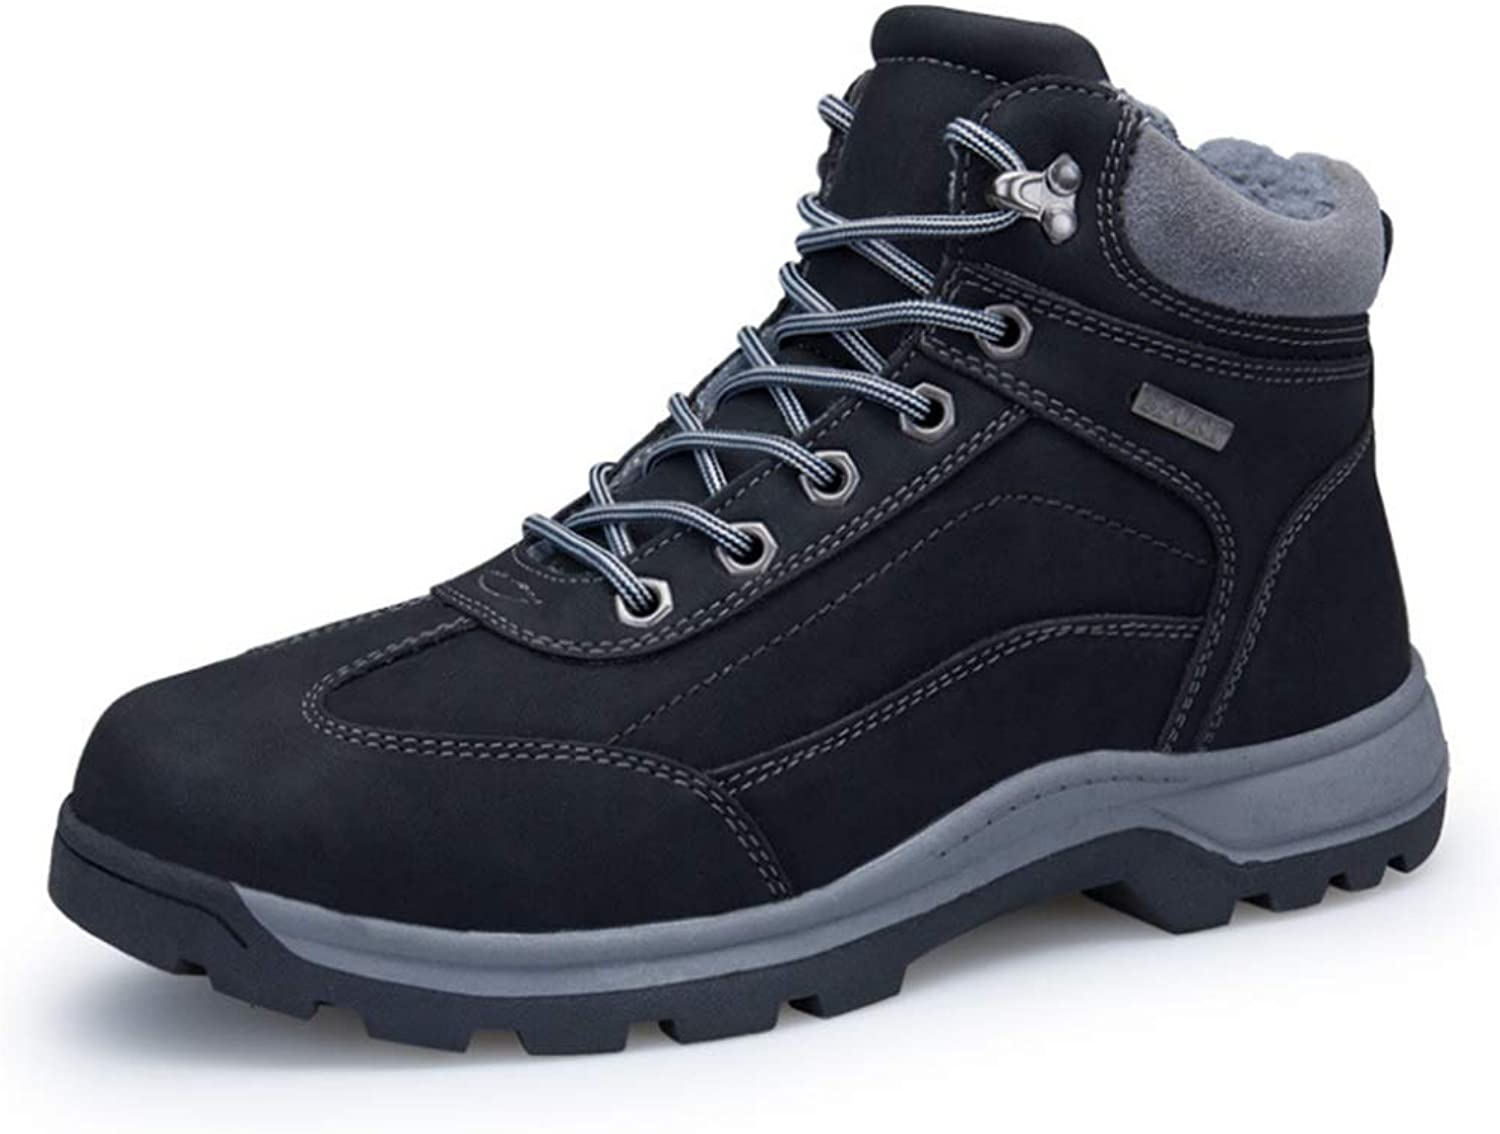 Mens Womens Snow Boots Winter Warm Ankle Boots Anti-Slip Leather Waterproof Safety Boots Work shoes for Walking Hiking Outdoor (color   Black, Size   8 US)